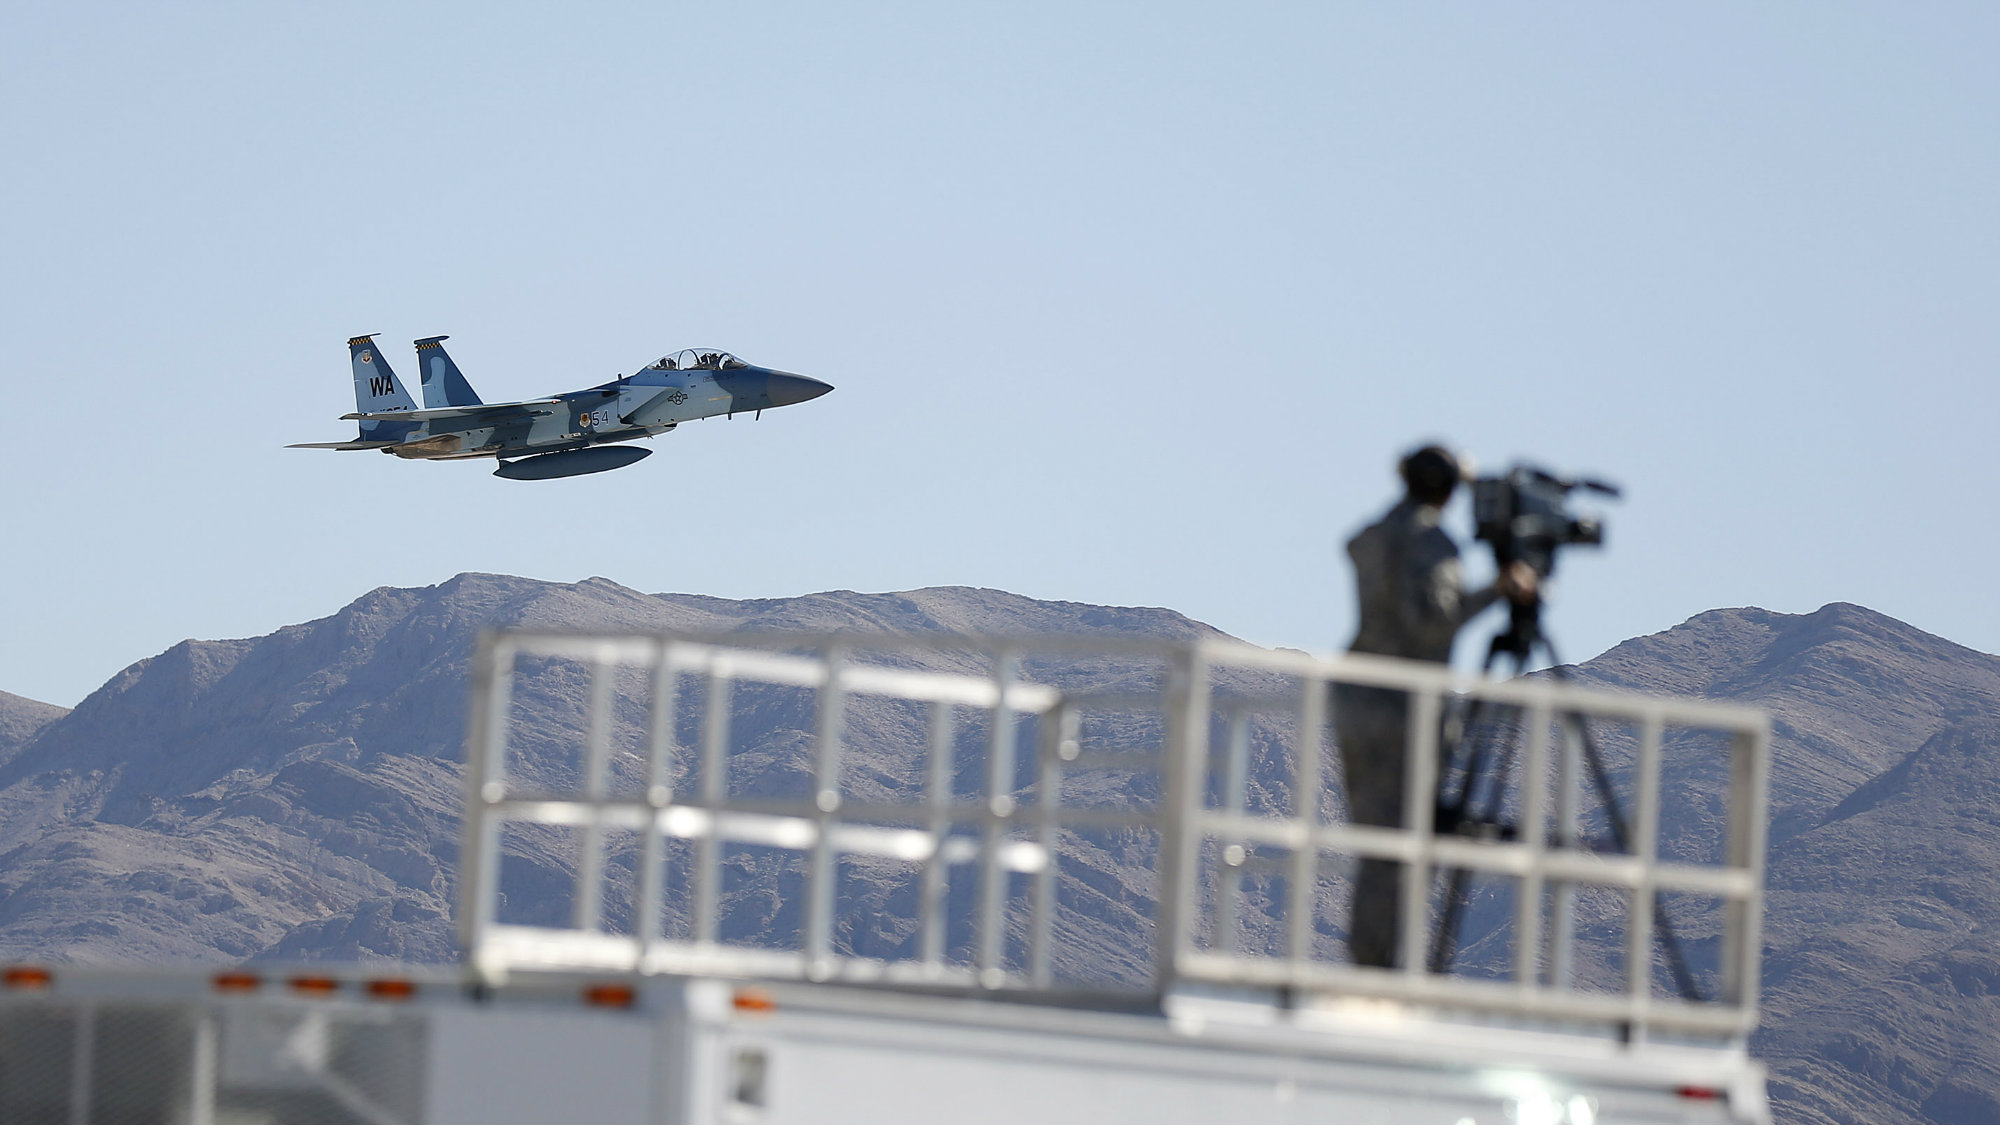 Capt. David Vincent and retired Air Force Brig. Gen. Charles Yeager perform a fly-by during their F-15D re-enactment flight commemorating Yeager's breaking of the sound barrier 65 years ago on Sunday, Oct. 14, 2012, at Nellis Air Force Base, Nev.